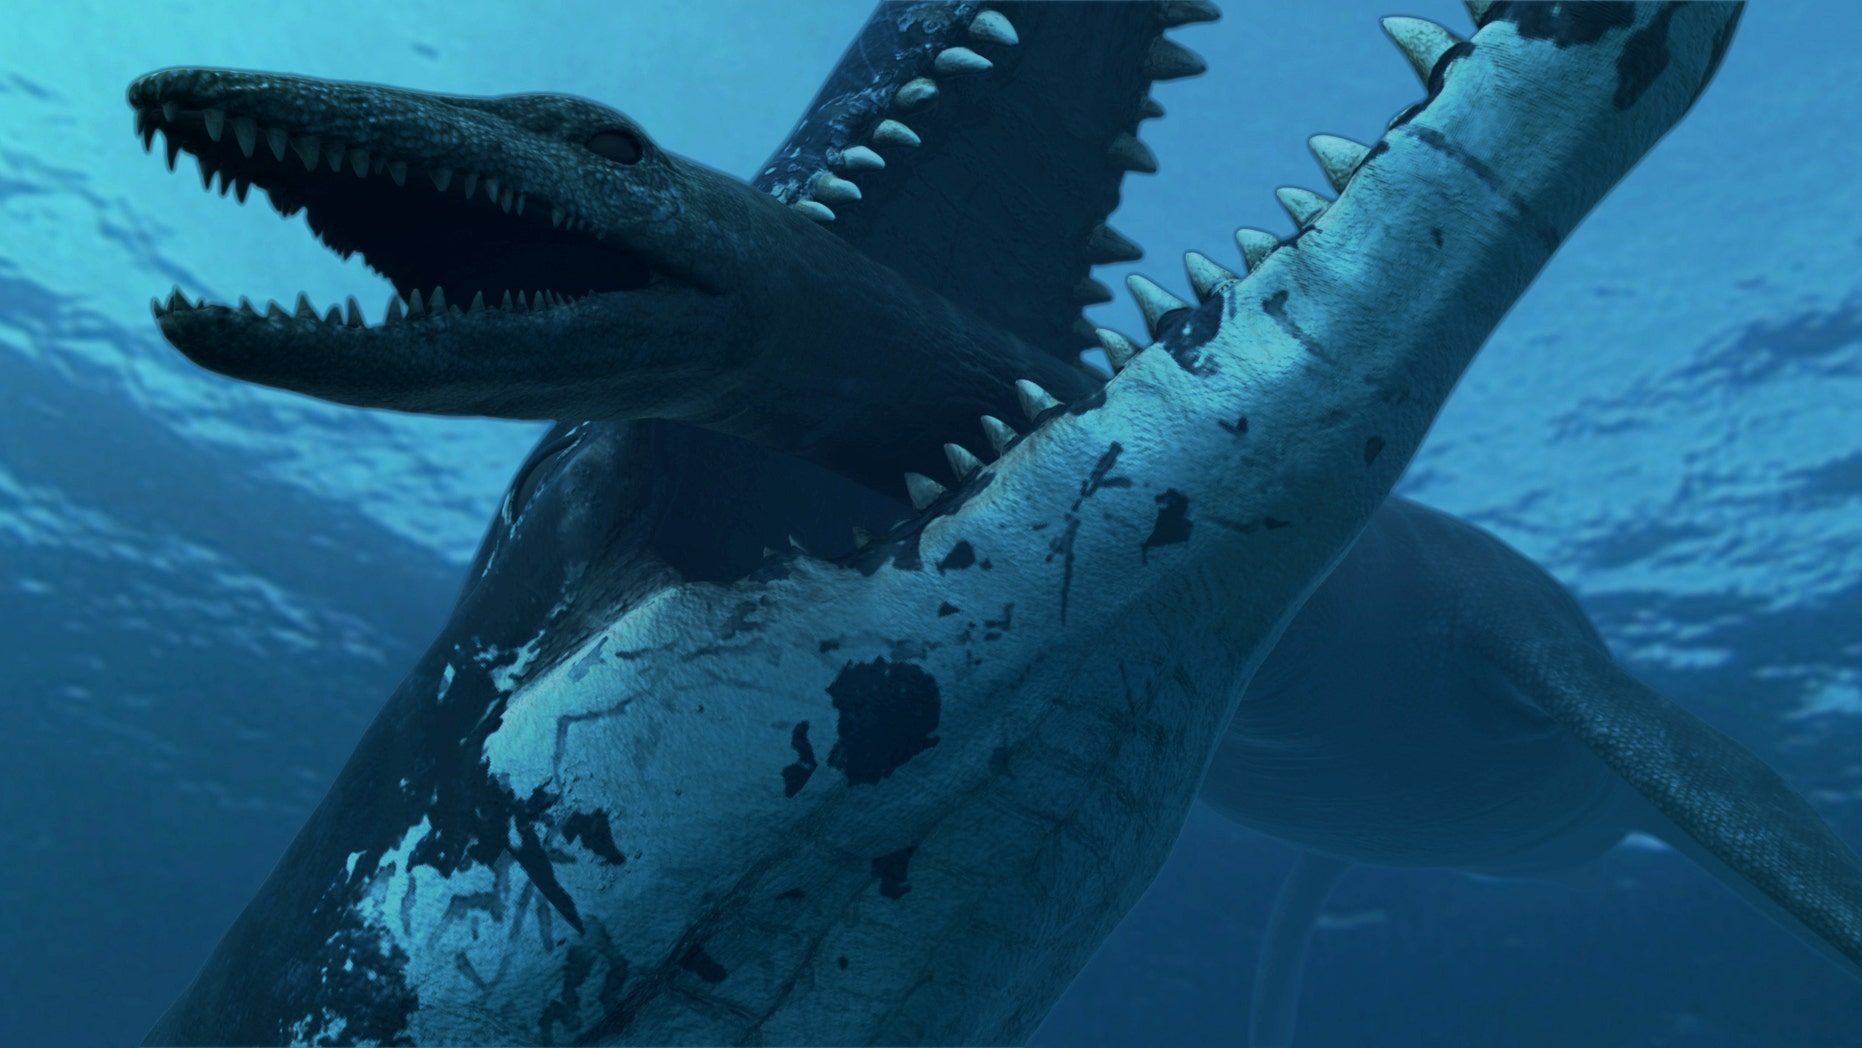 A pliosaur crushes down on a smaller plesiosaur, thanks to its 33,0000-lb bite.